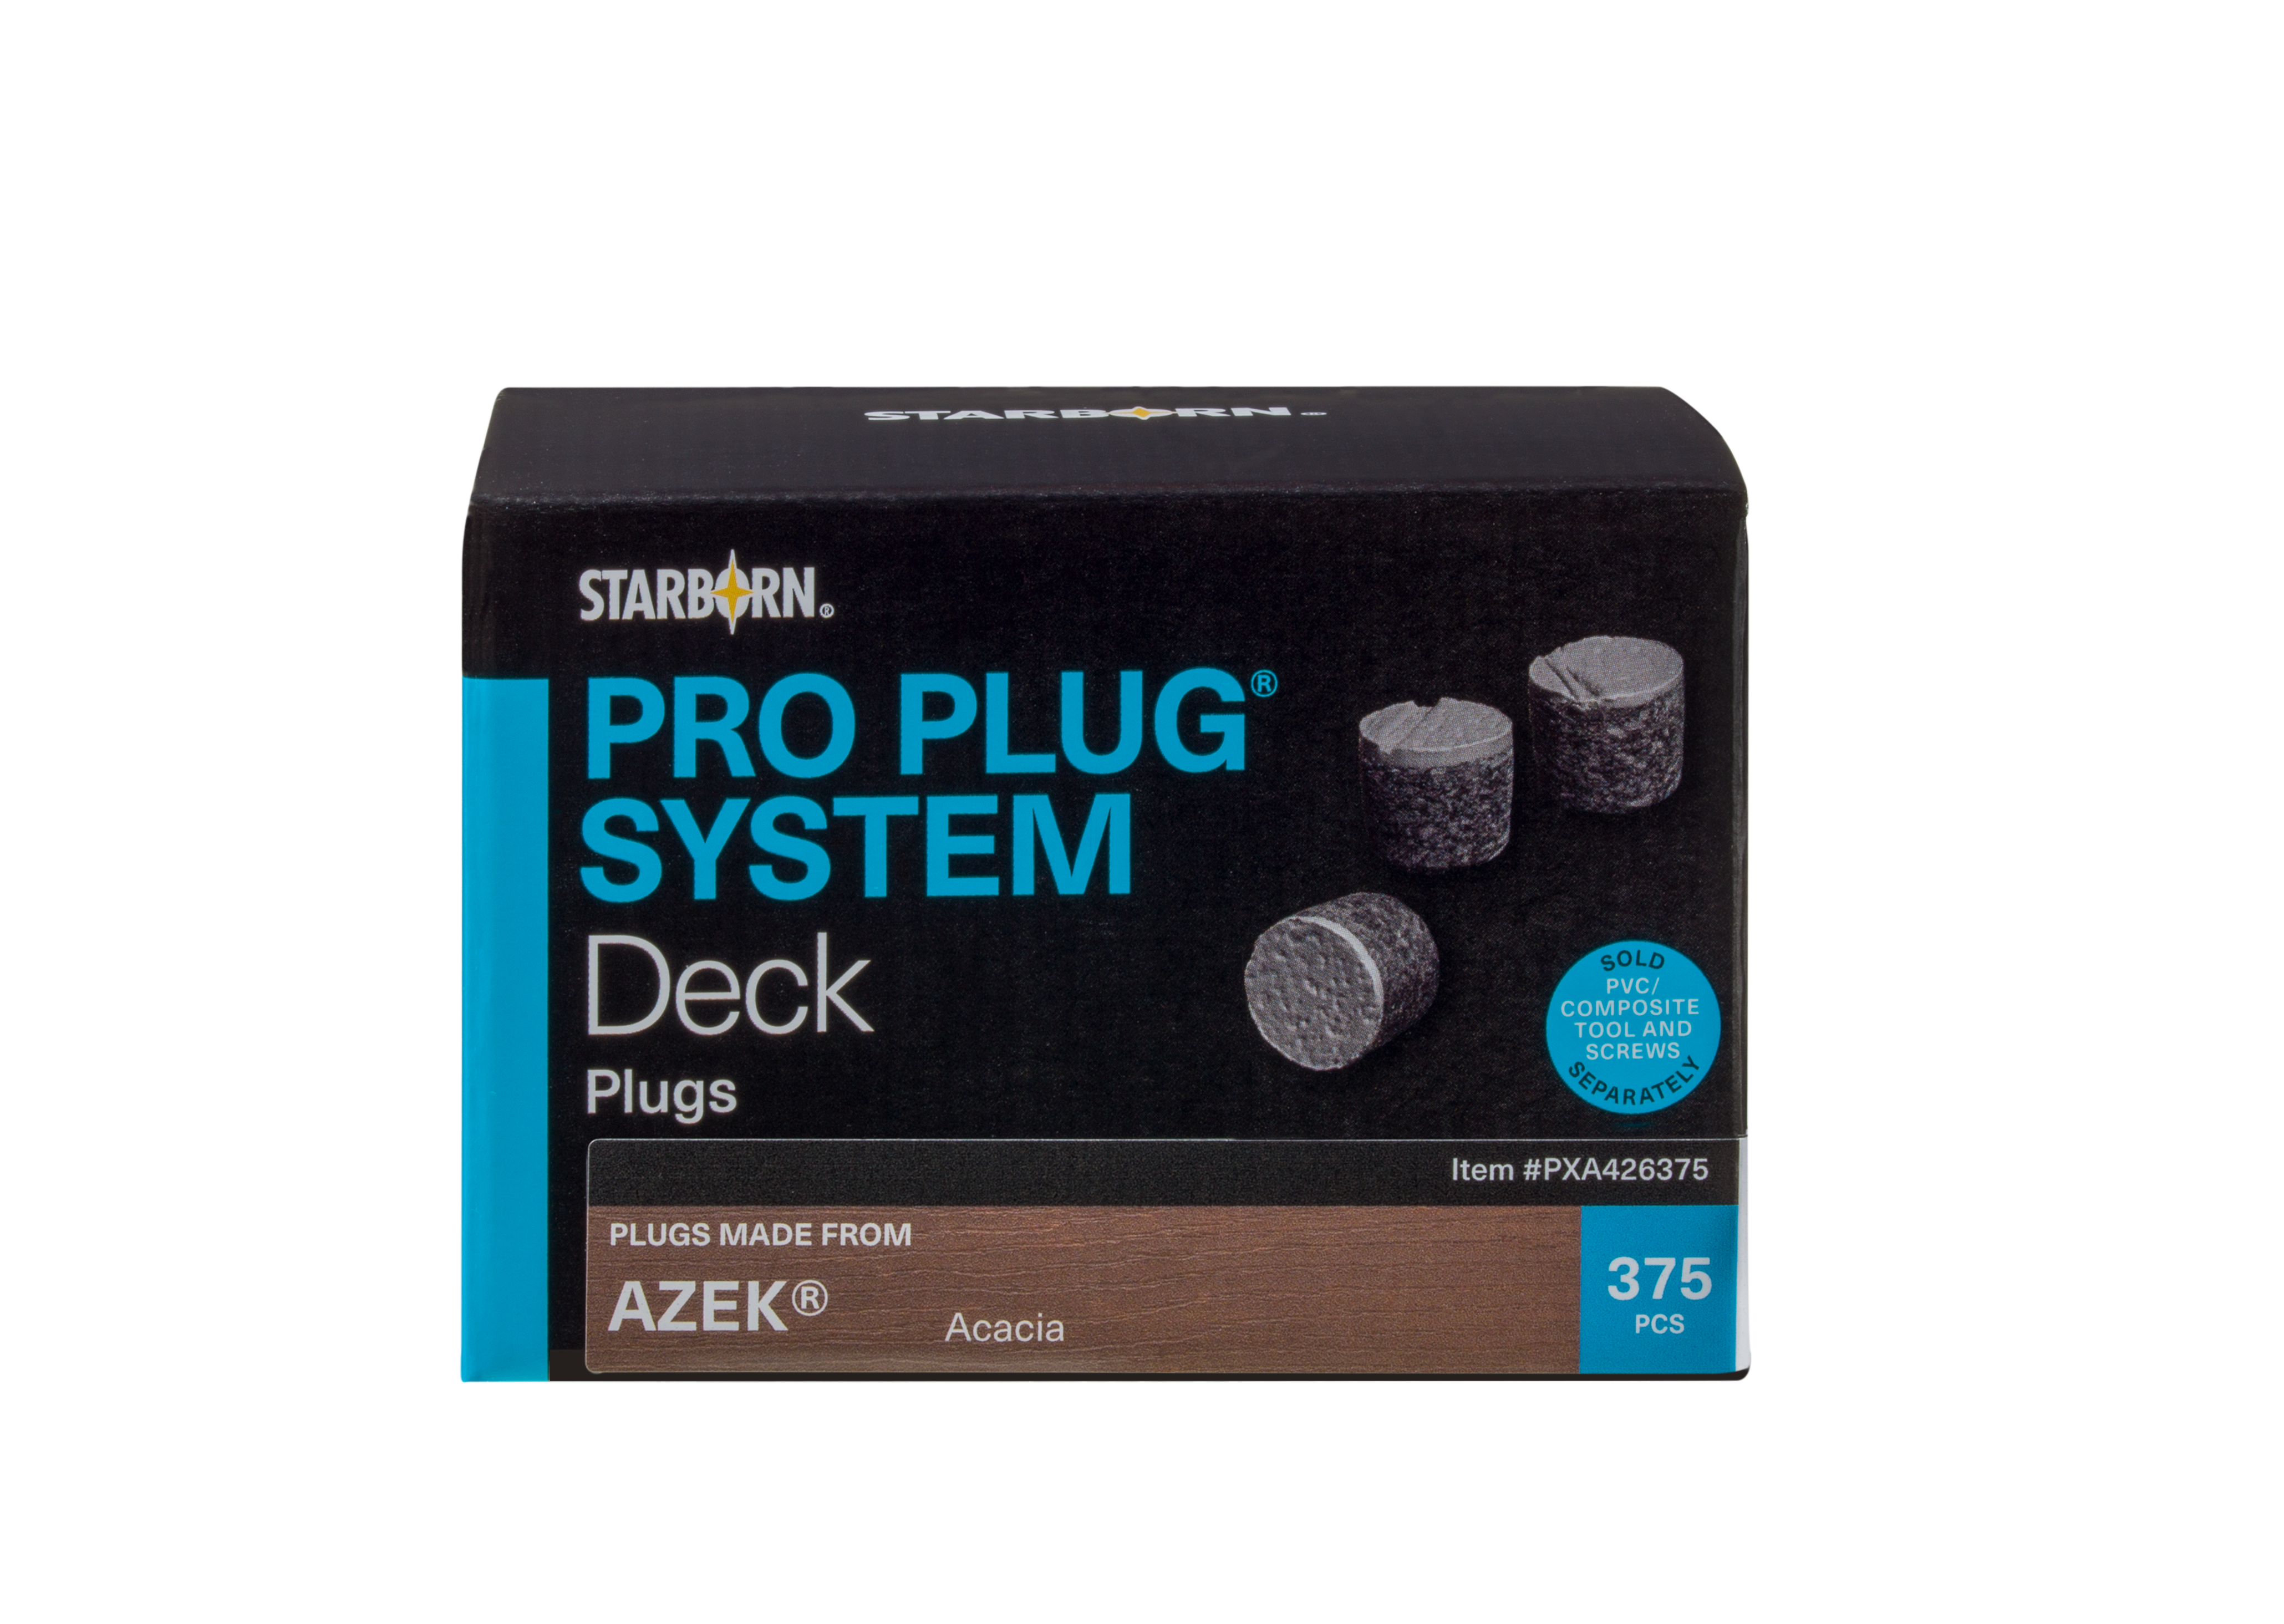 Pro Plug® System 375 Plugs for use with AZEK® Decks